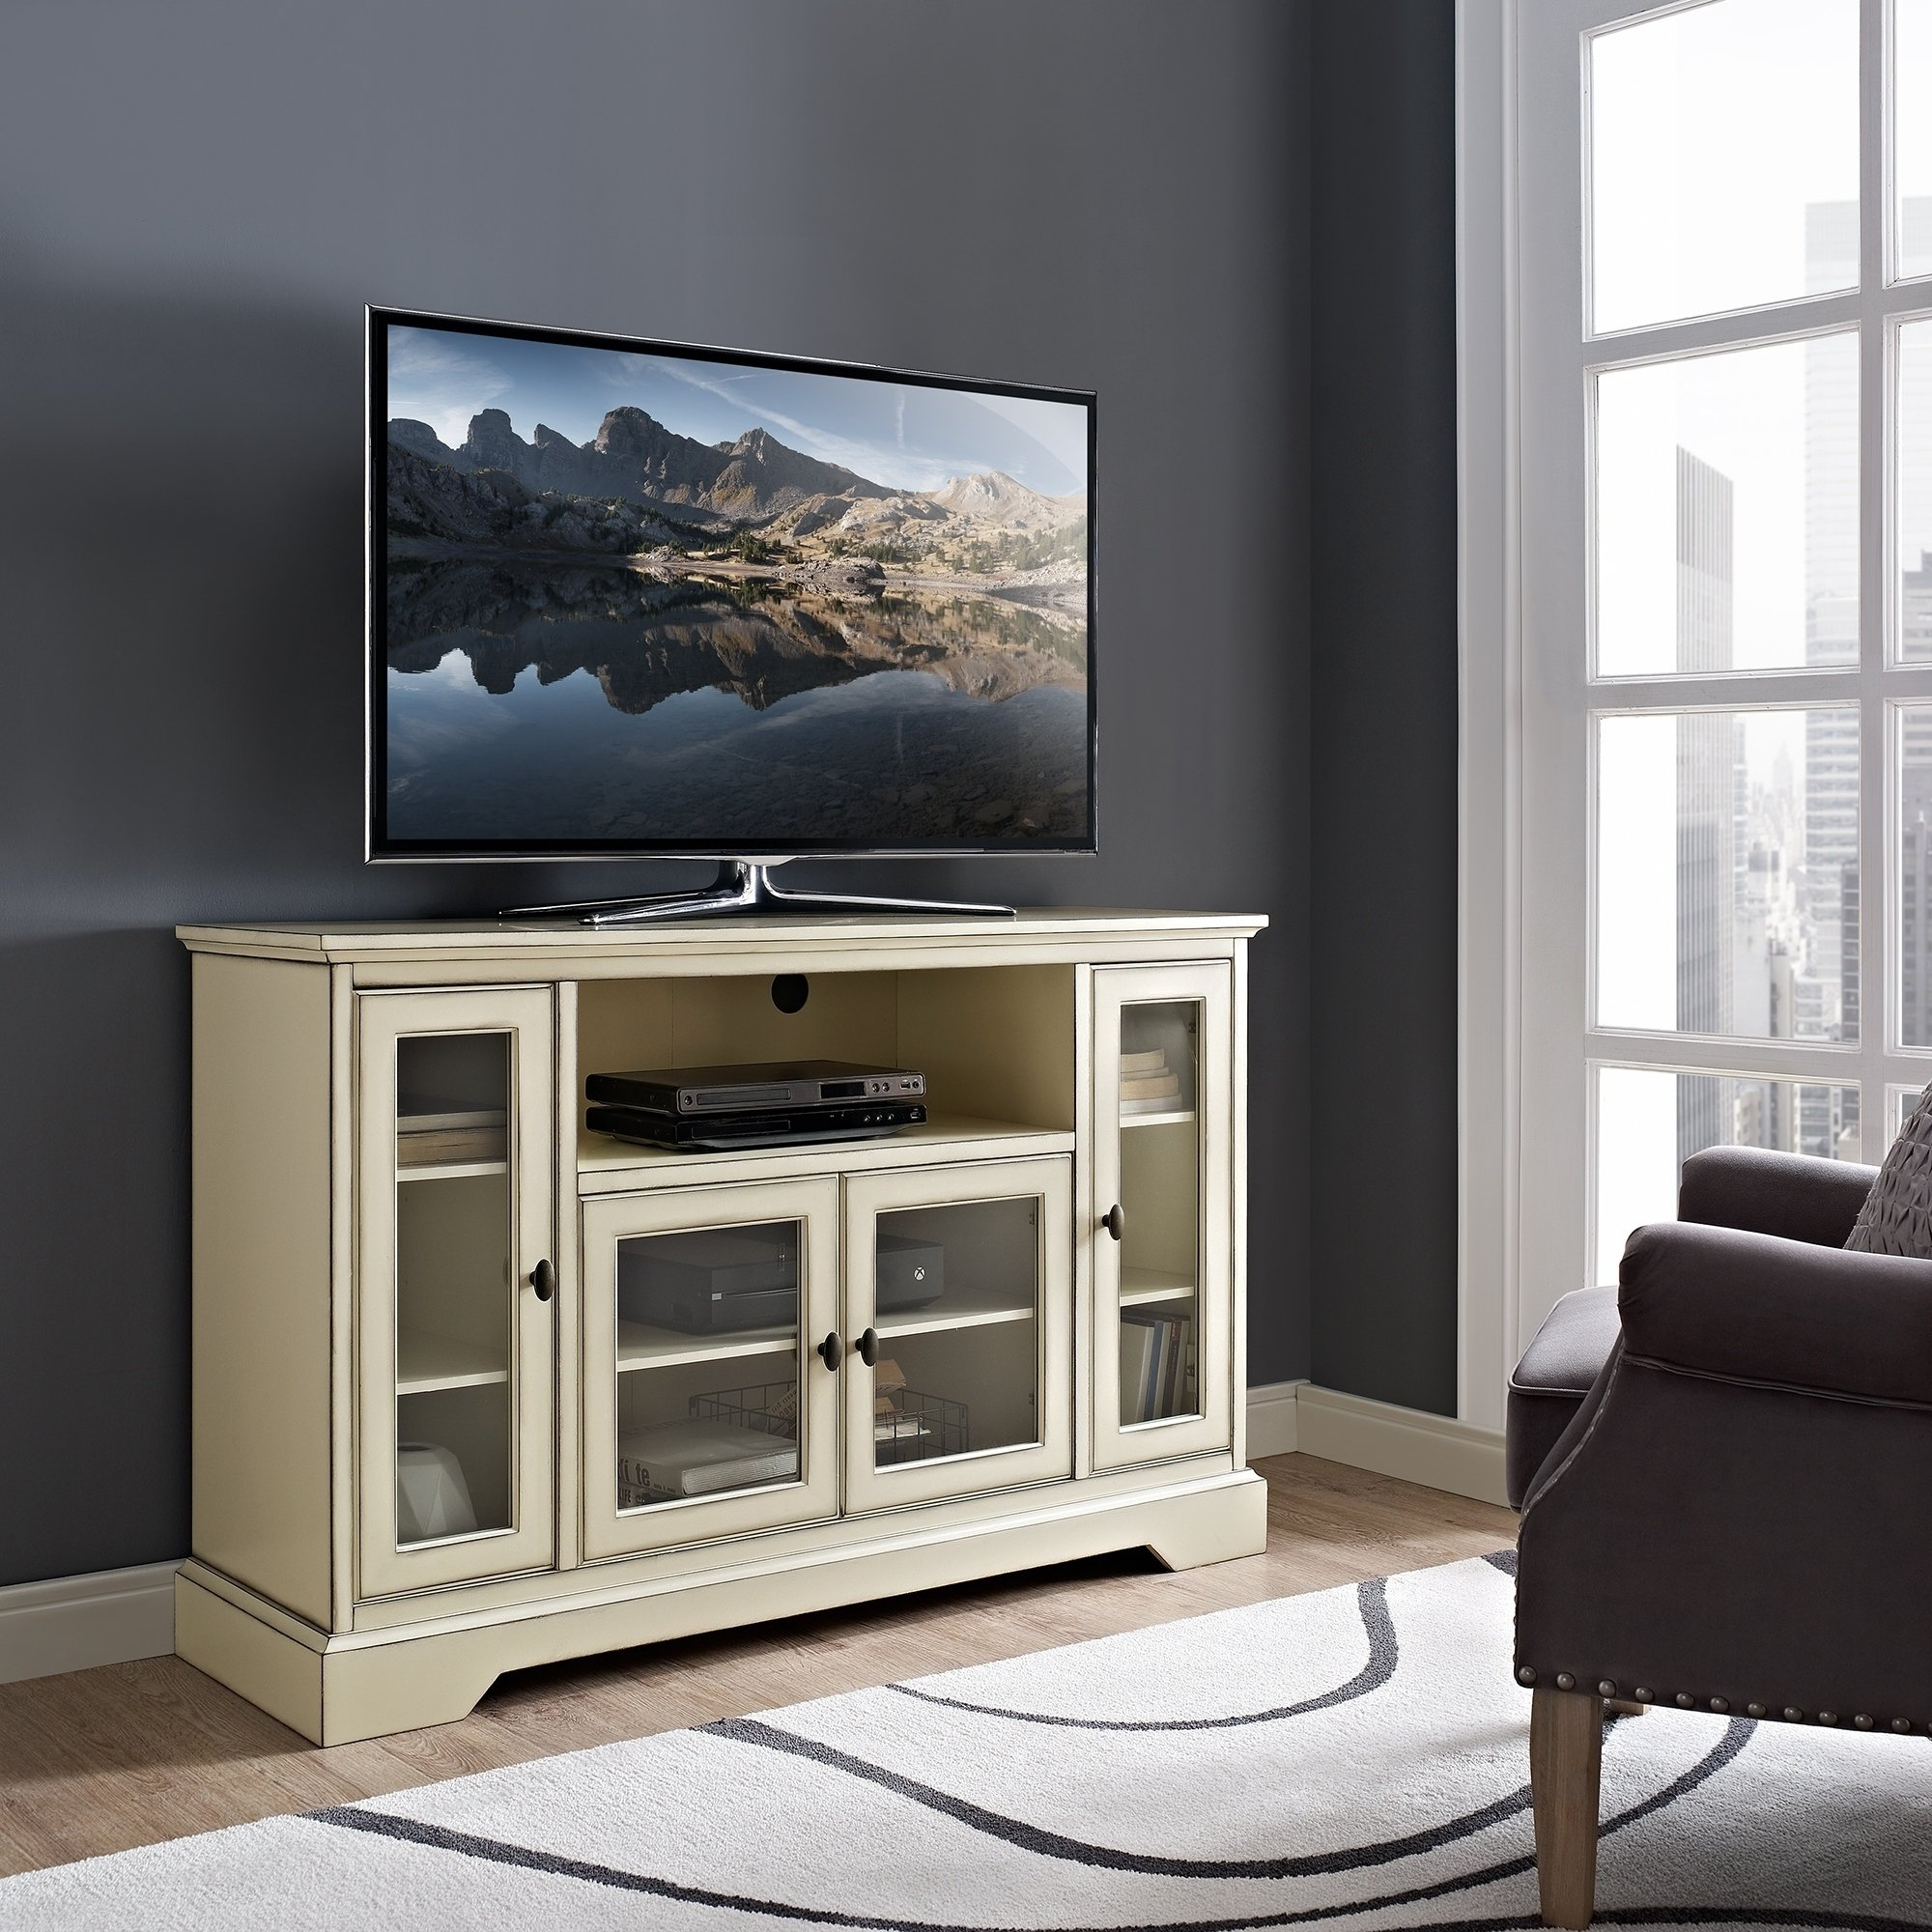 Buy Grey, 42 – 60 Inches Tv Stands & Entertainment Centers Online At Throughout Rowan 74 Inch Tv Stands (View 10 of 30)